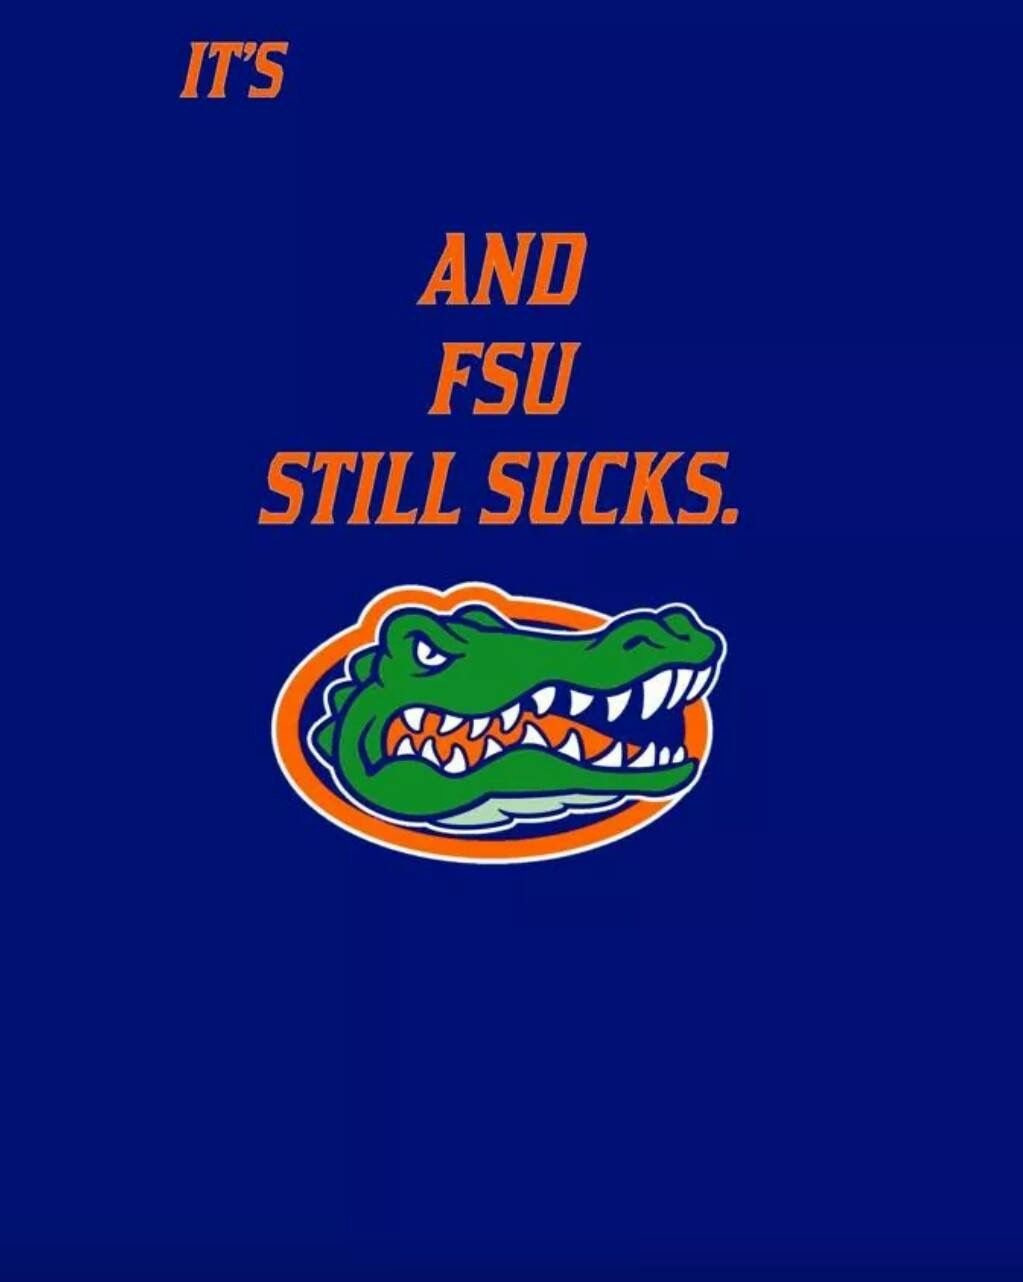 Pin by Angie Chancey on Gator Girl Florida gators